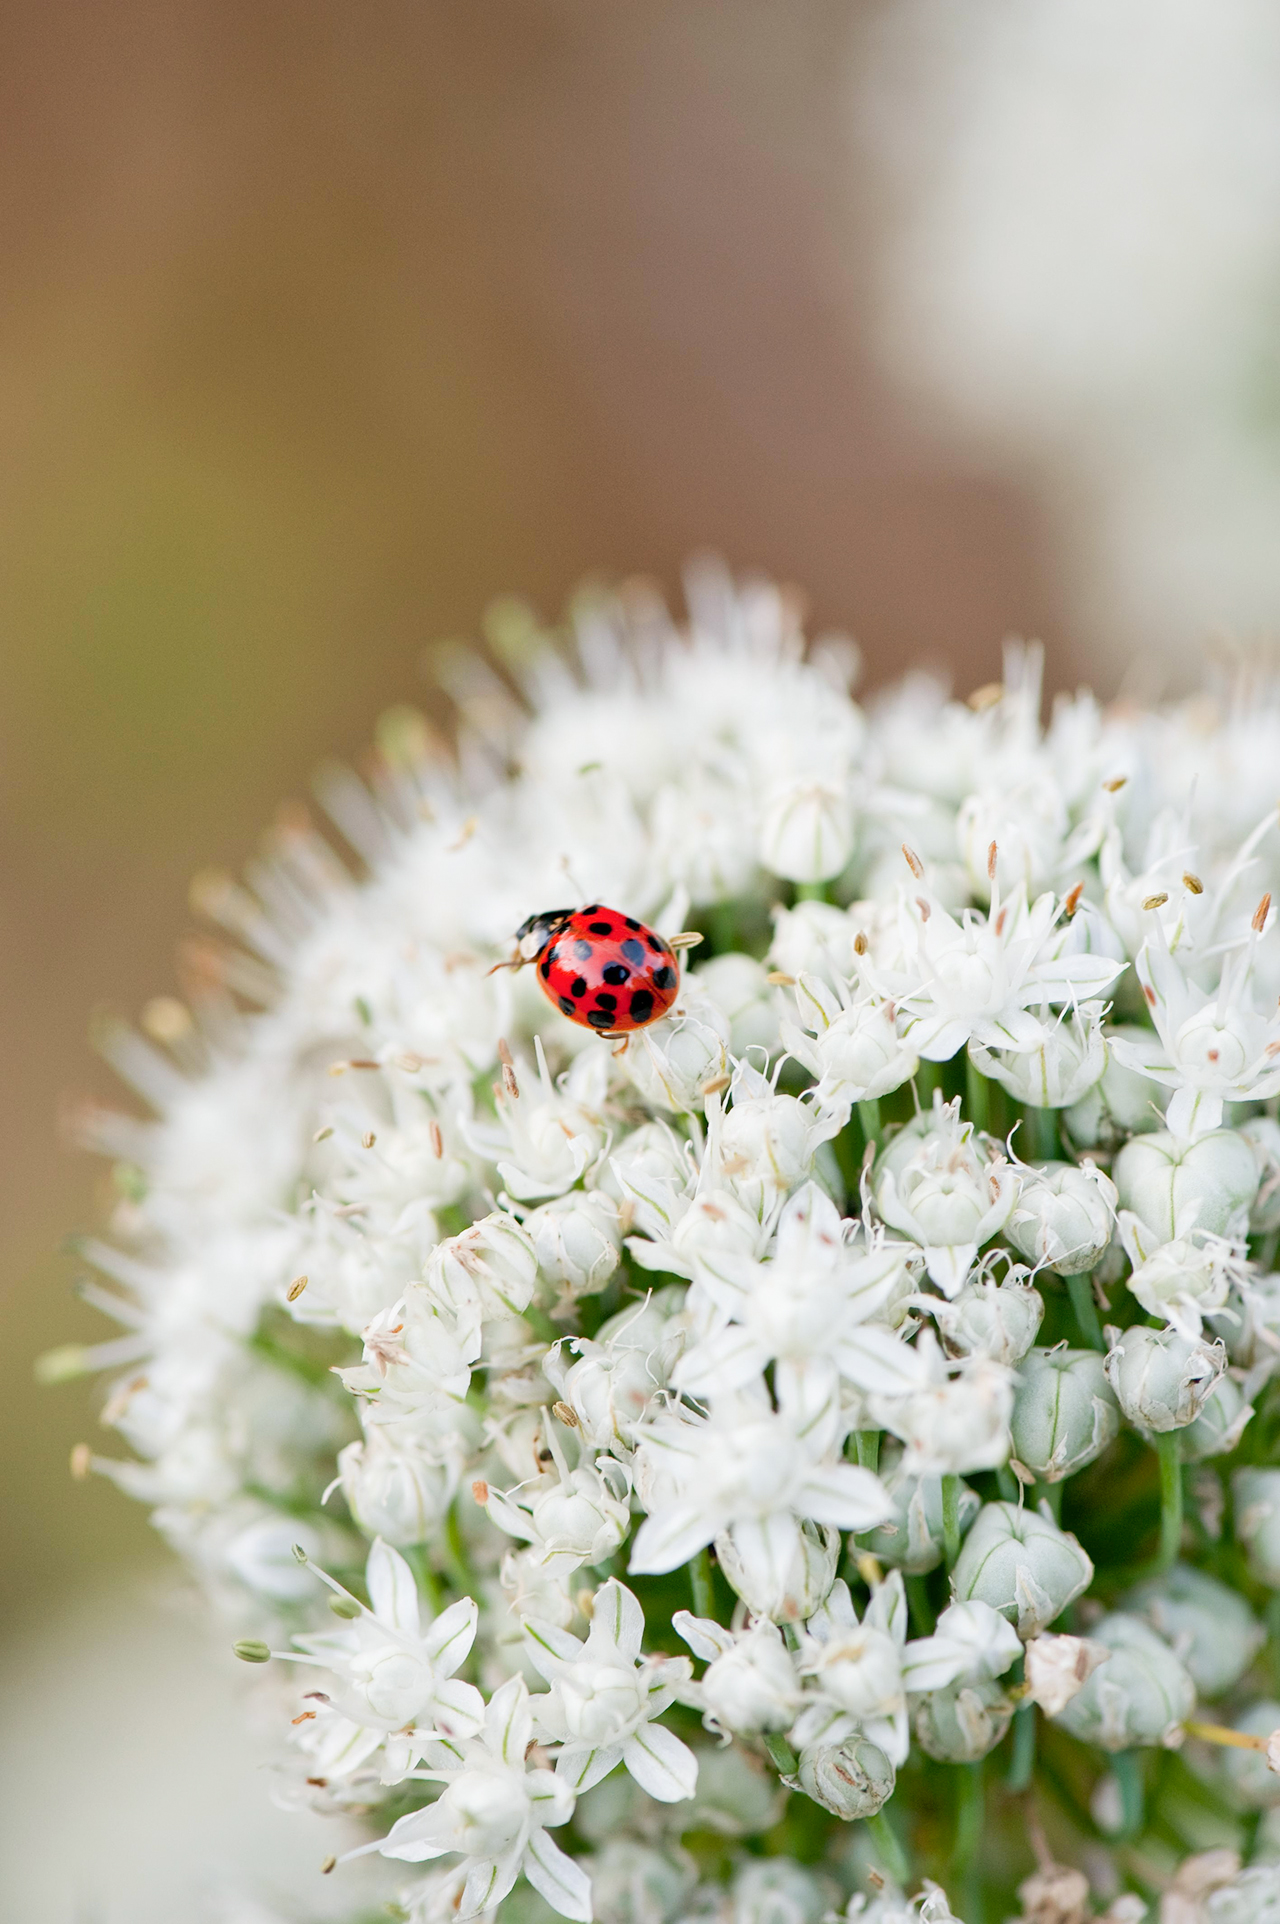 lady bug on small white flowers